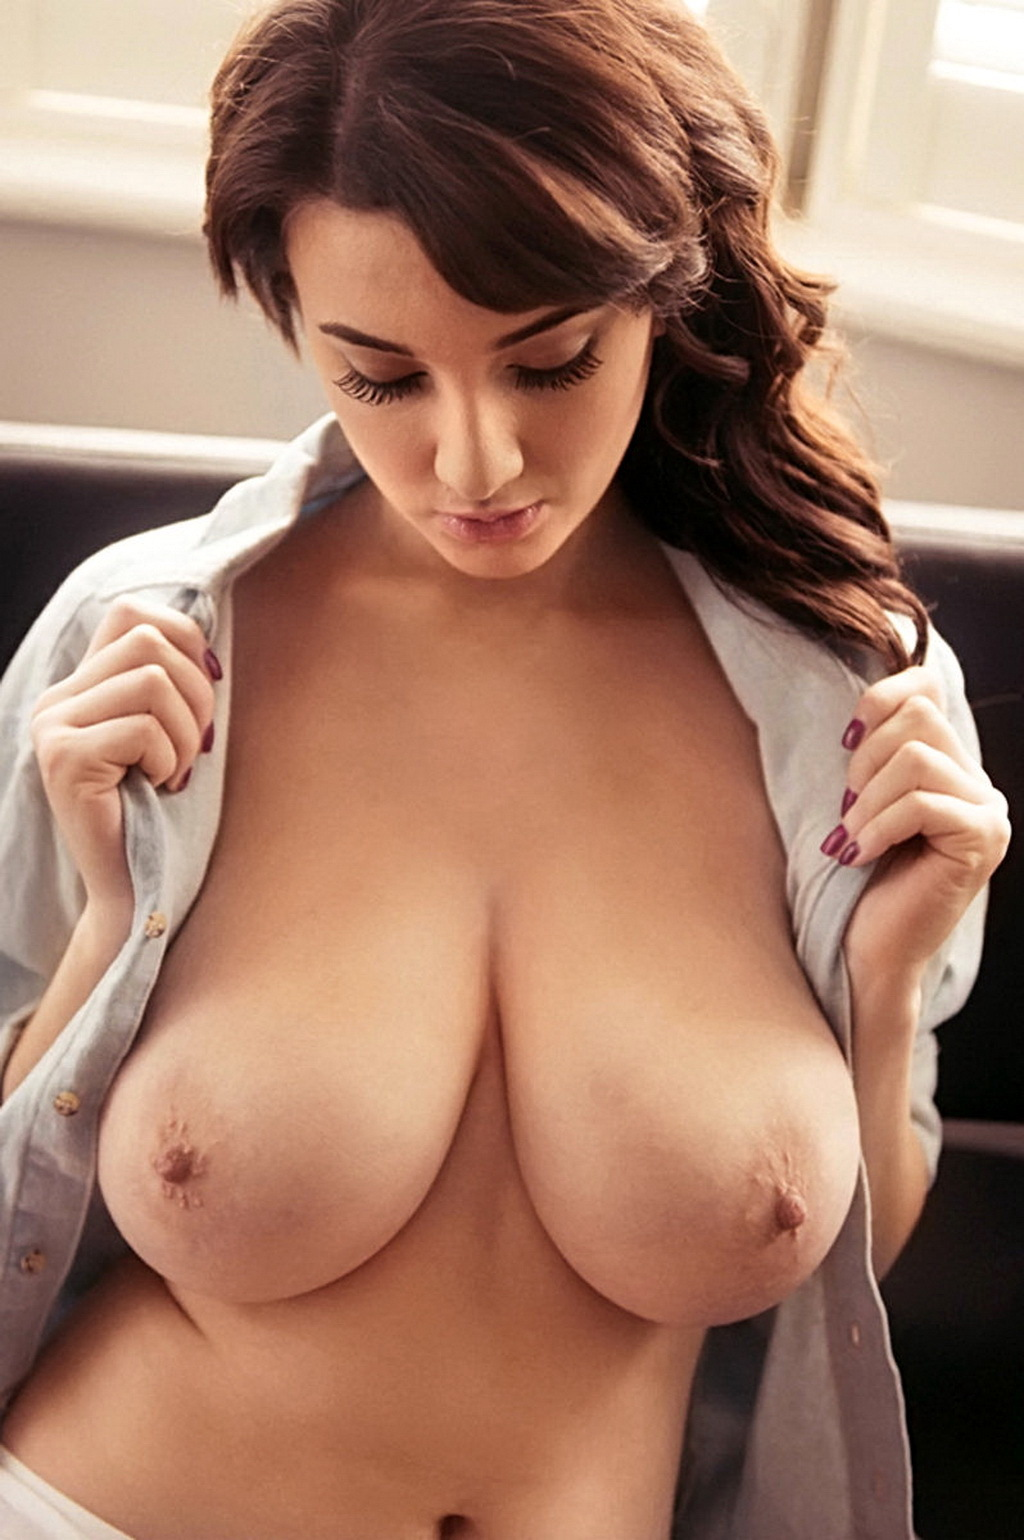 hot-naked-girls-with-really-nice-boobs-snow-bunnies-fucking